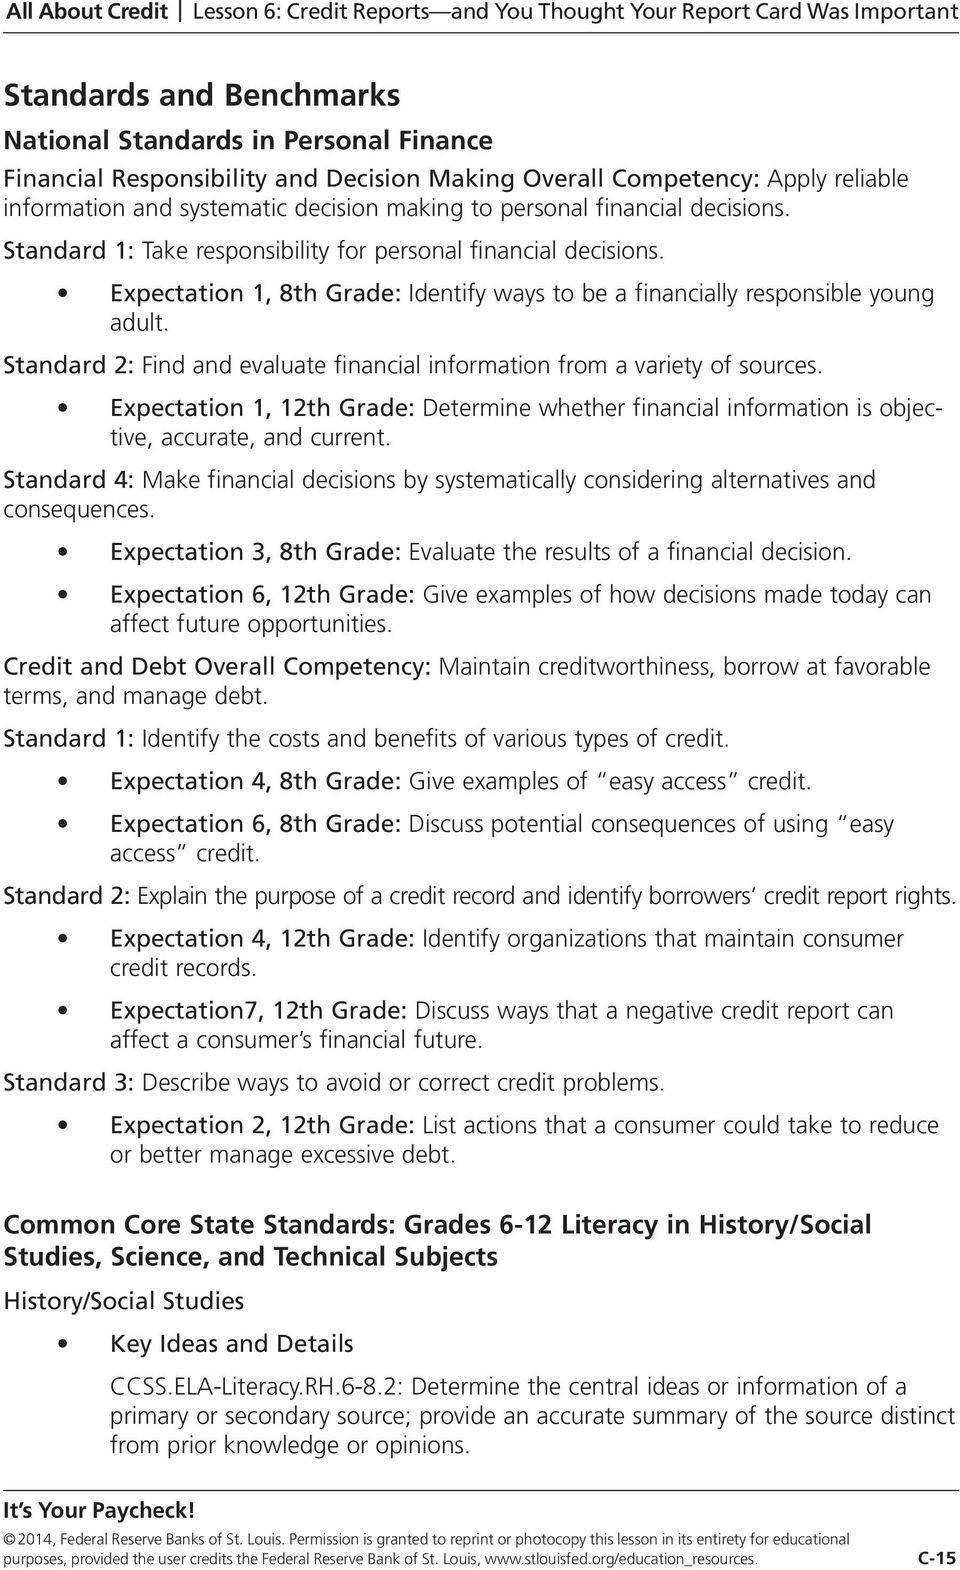 Standard 2: Find and evaluate financial information from a variety of sources. Expectation 1, 12th Grade: Determine whether financial information is objective, accurate, and current.